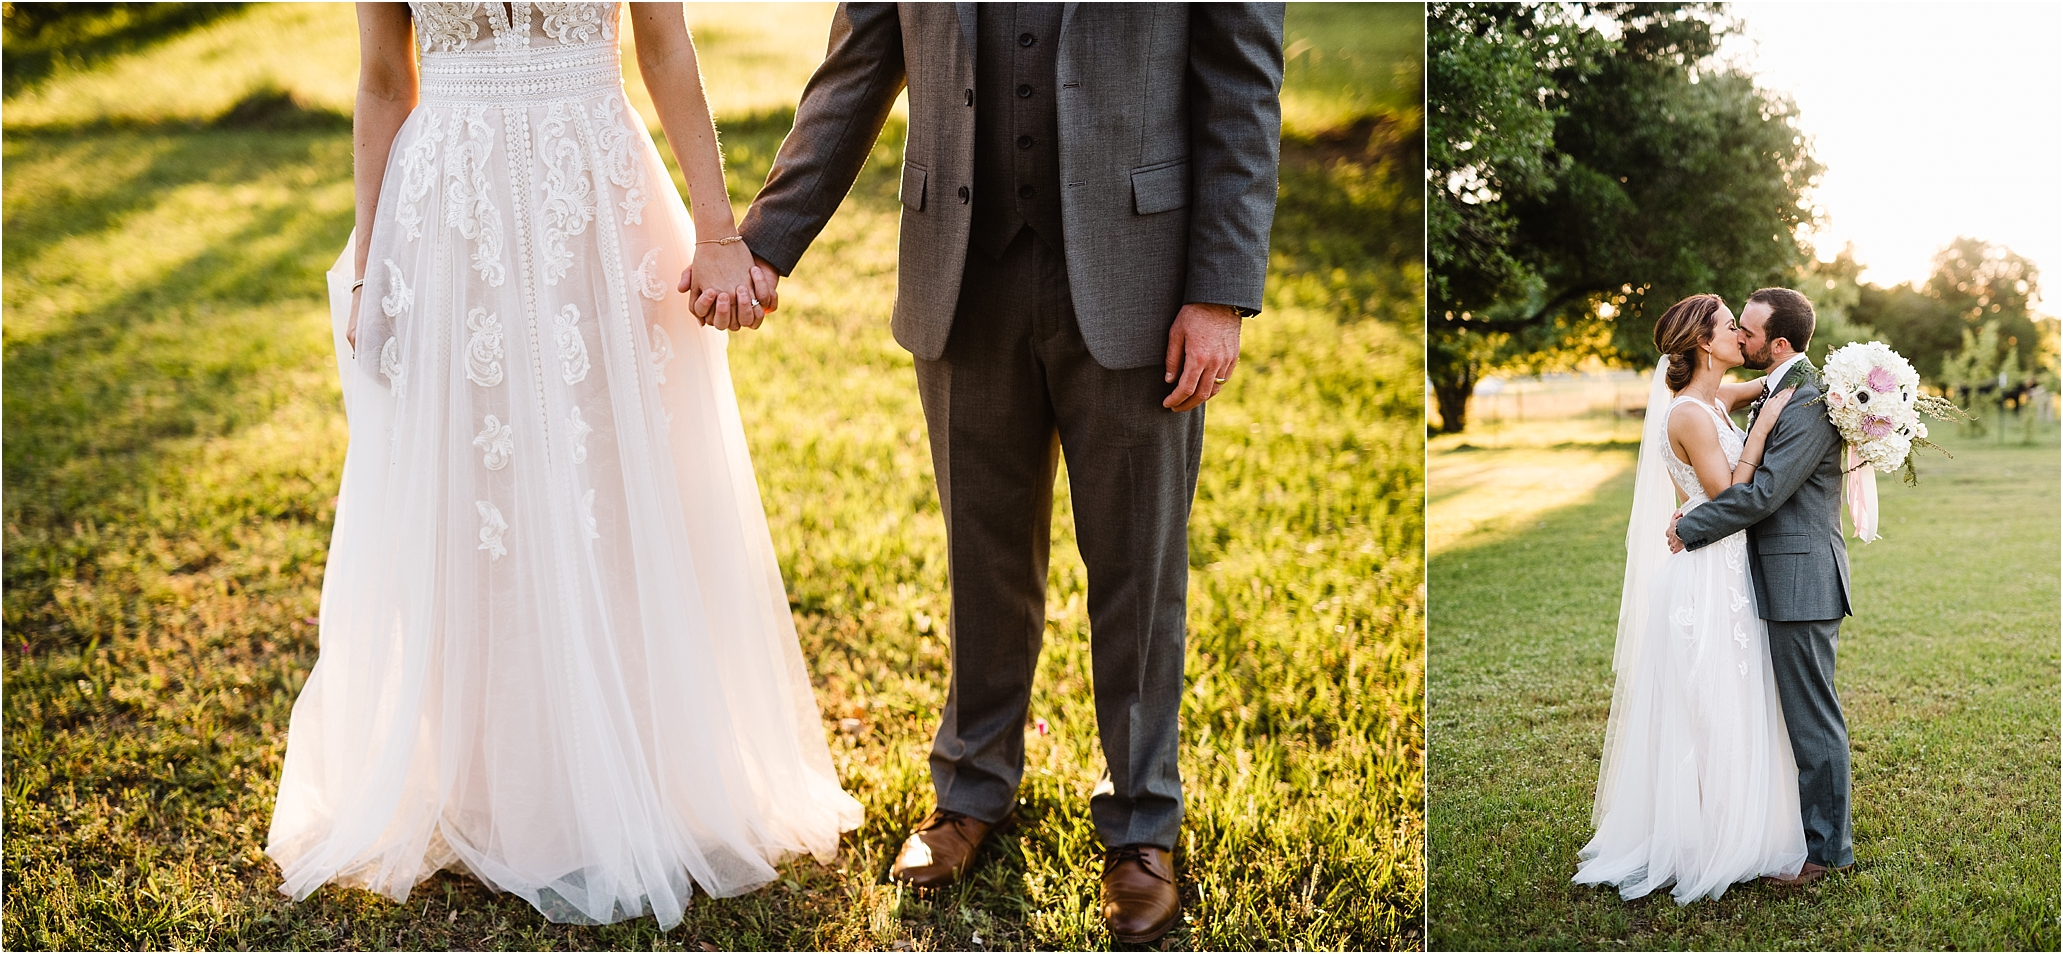 PattisonHouse_TexasWeddingPhotographer_CarlyCrockett&MattBrownWedding_0074.jpg